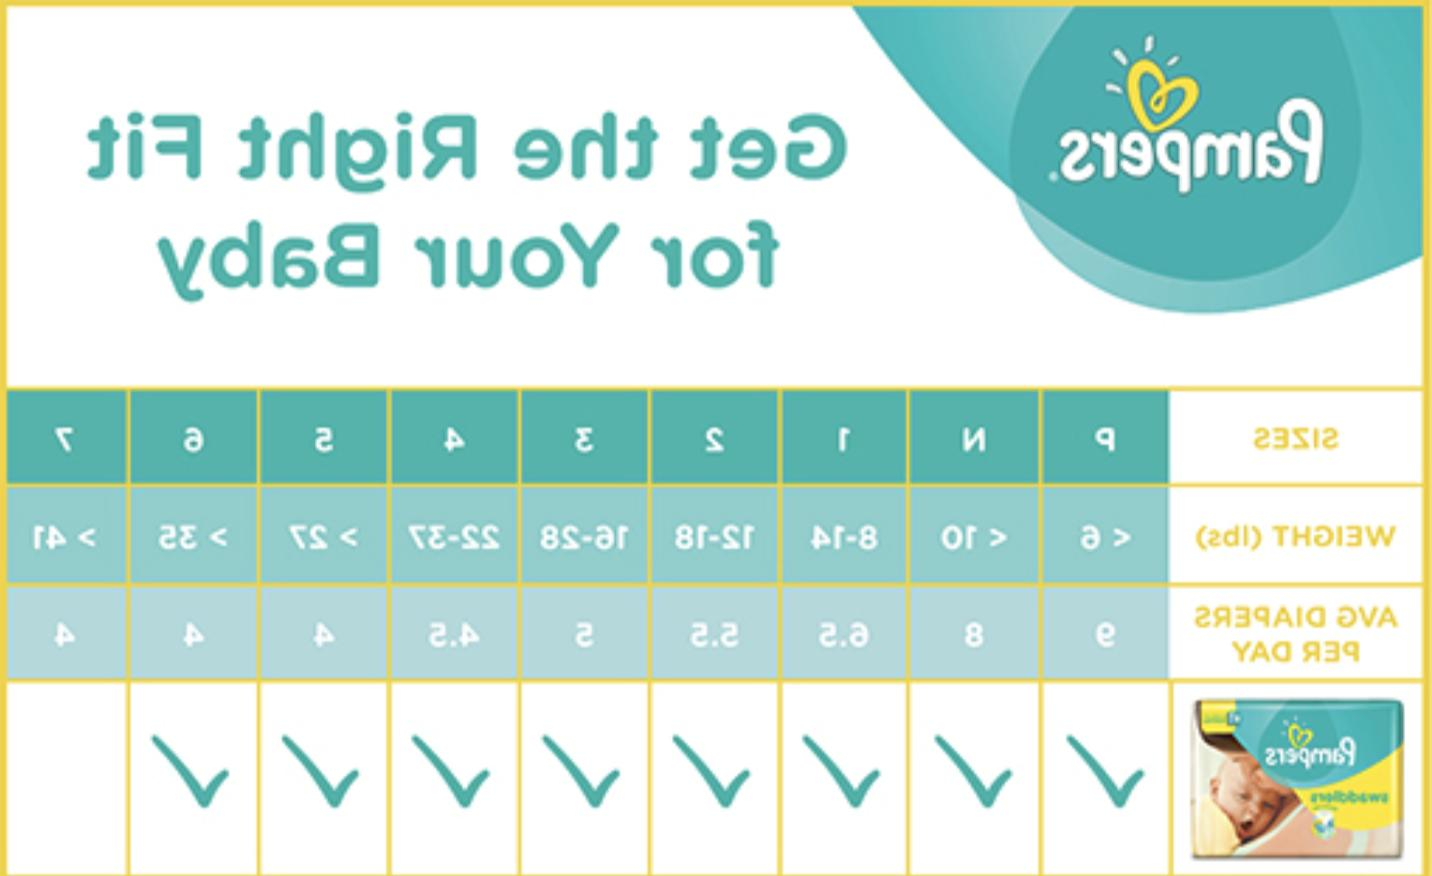 Pampers P-1, 1 2 5 - SIZES